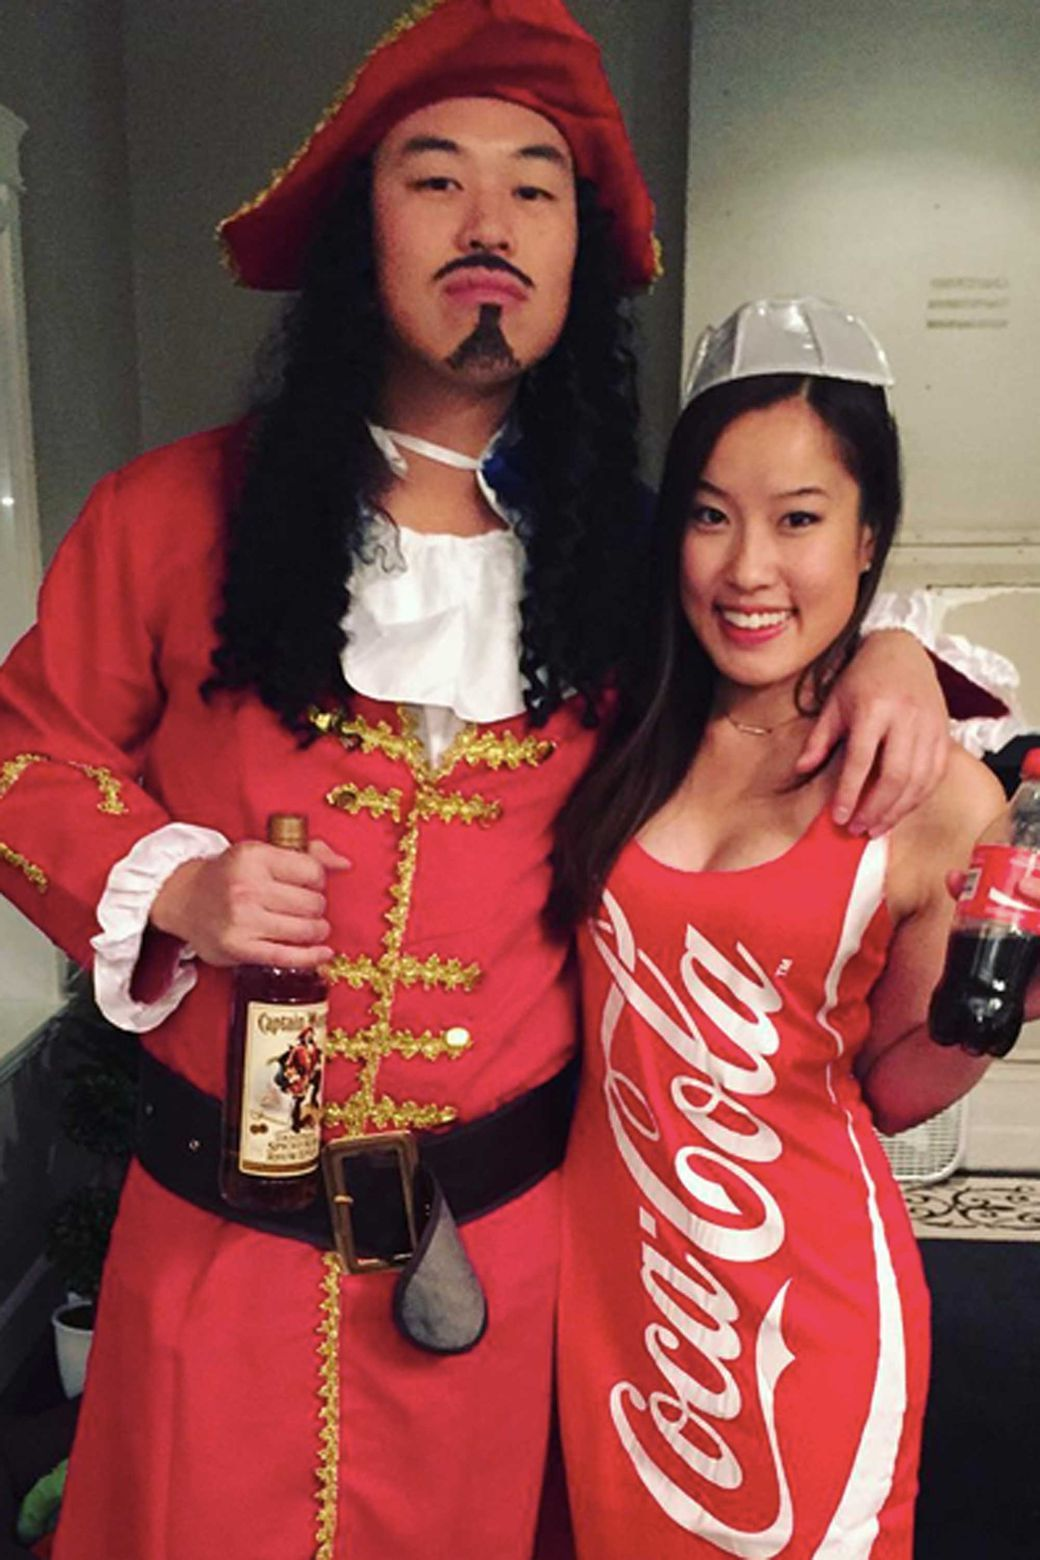 These Adorably Cheesy Couples Costumes Will Give You Life This Halloween #funnyhalloweencostumes